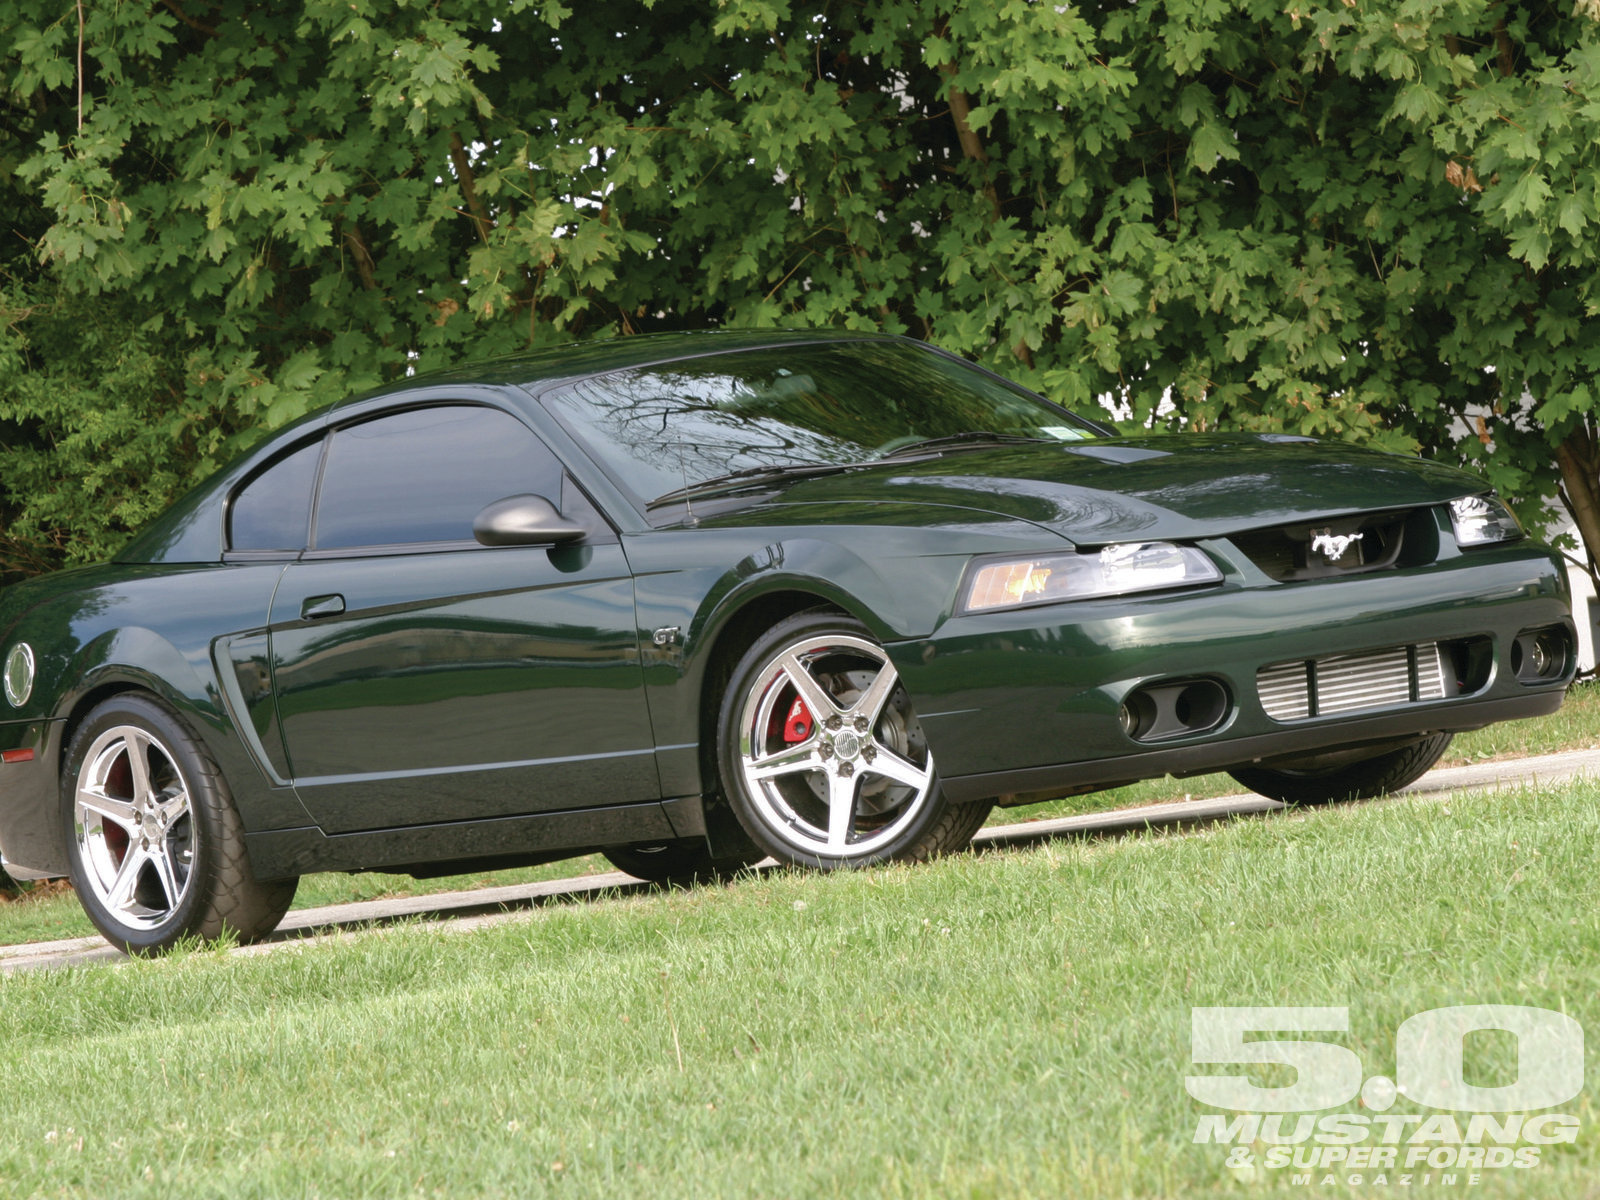 2001 Ford Mustang photo - 3